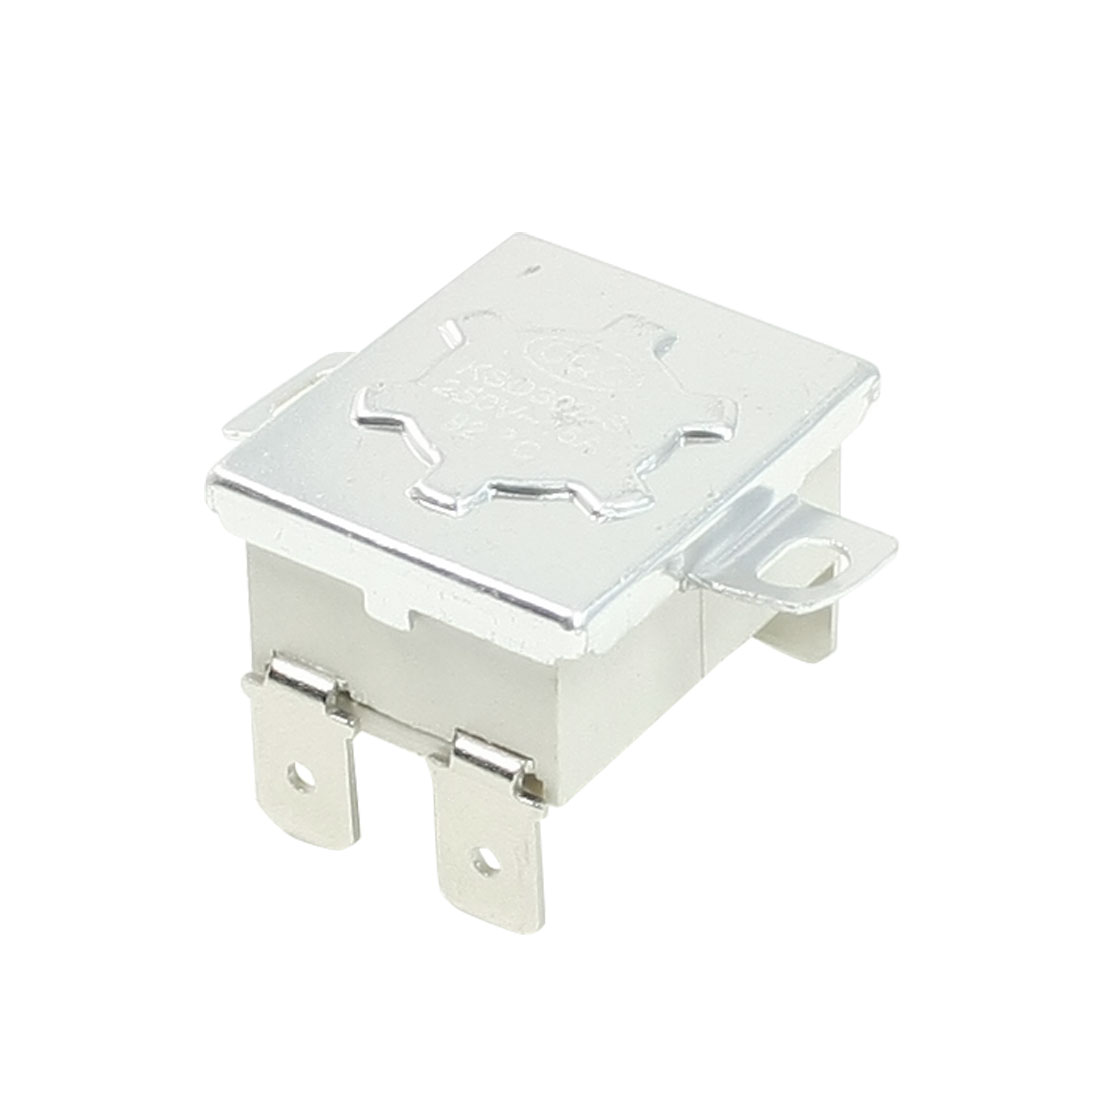 KSD302-S 98 Celsius N.C.Temperature Control Switch Thermostat AC250V 15A